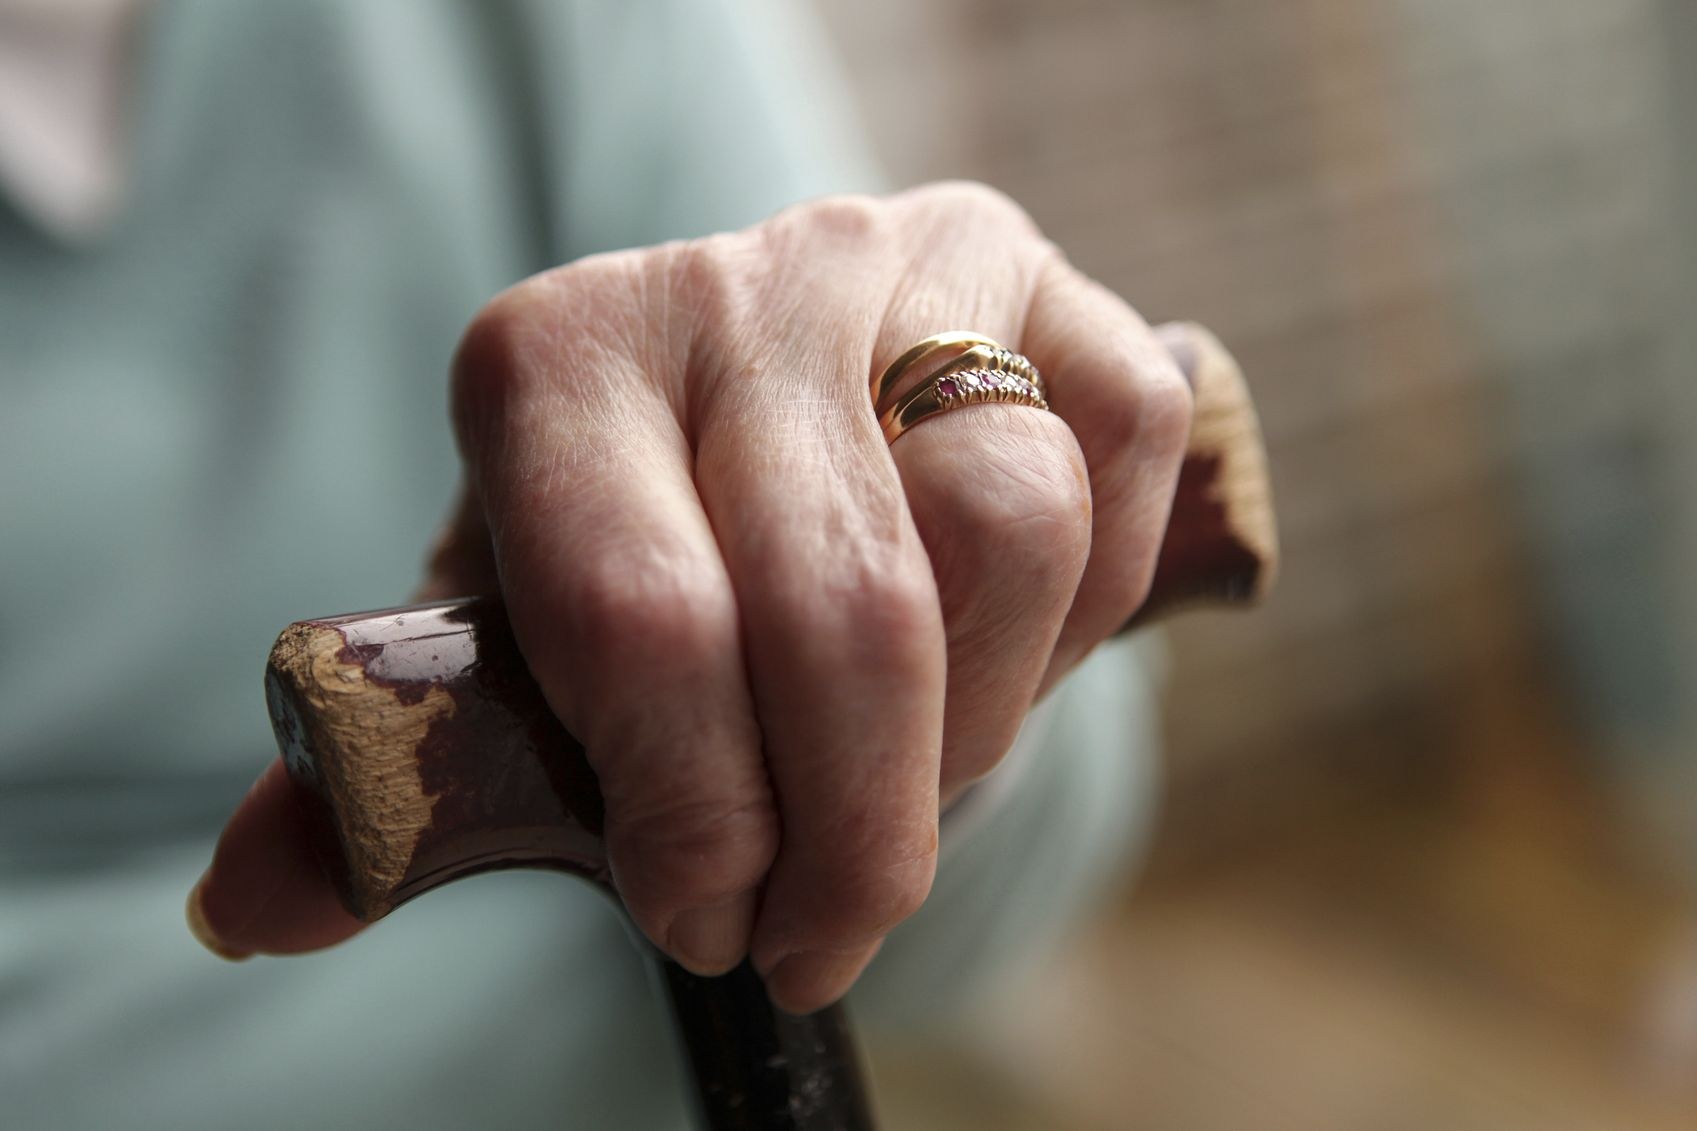 Biologics May Reduce the Need for Assistive Devices in RA Patients